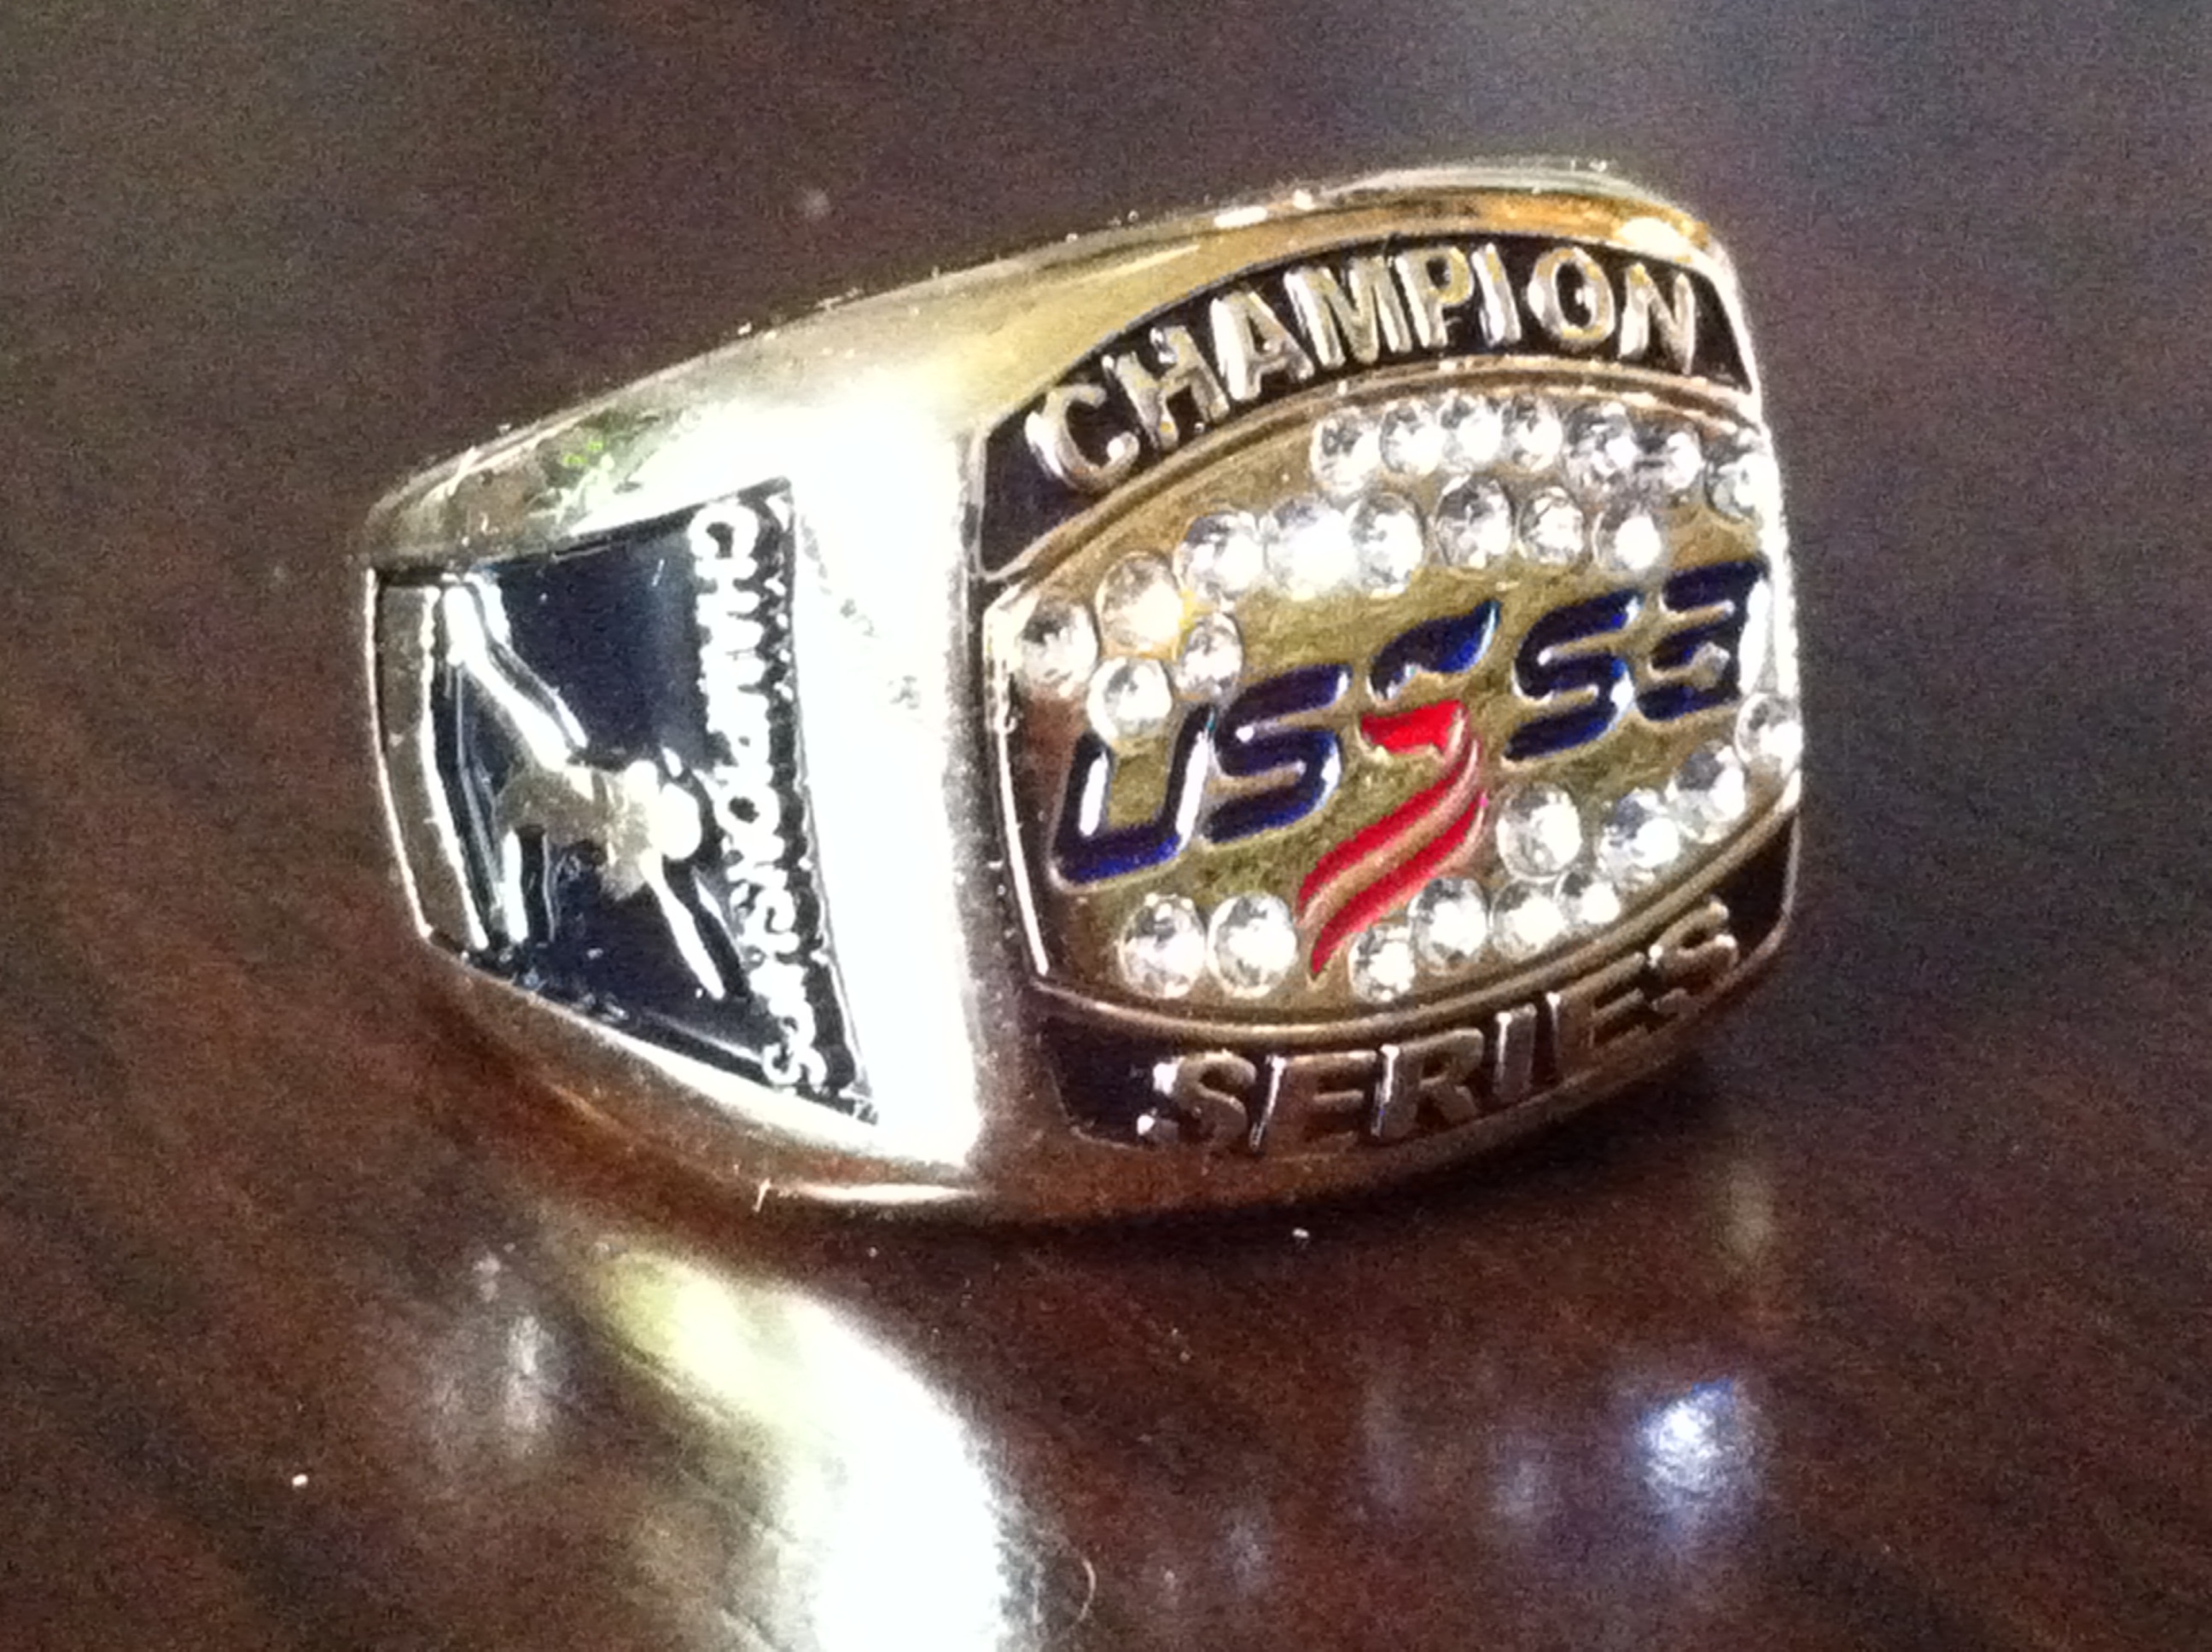 usssa com and softball showroom world manufacturers series rings championship at baseball alibaba suppliers